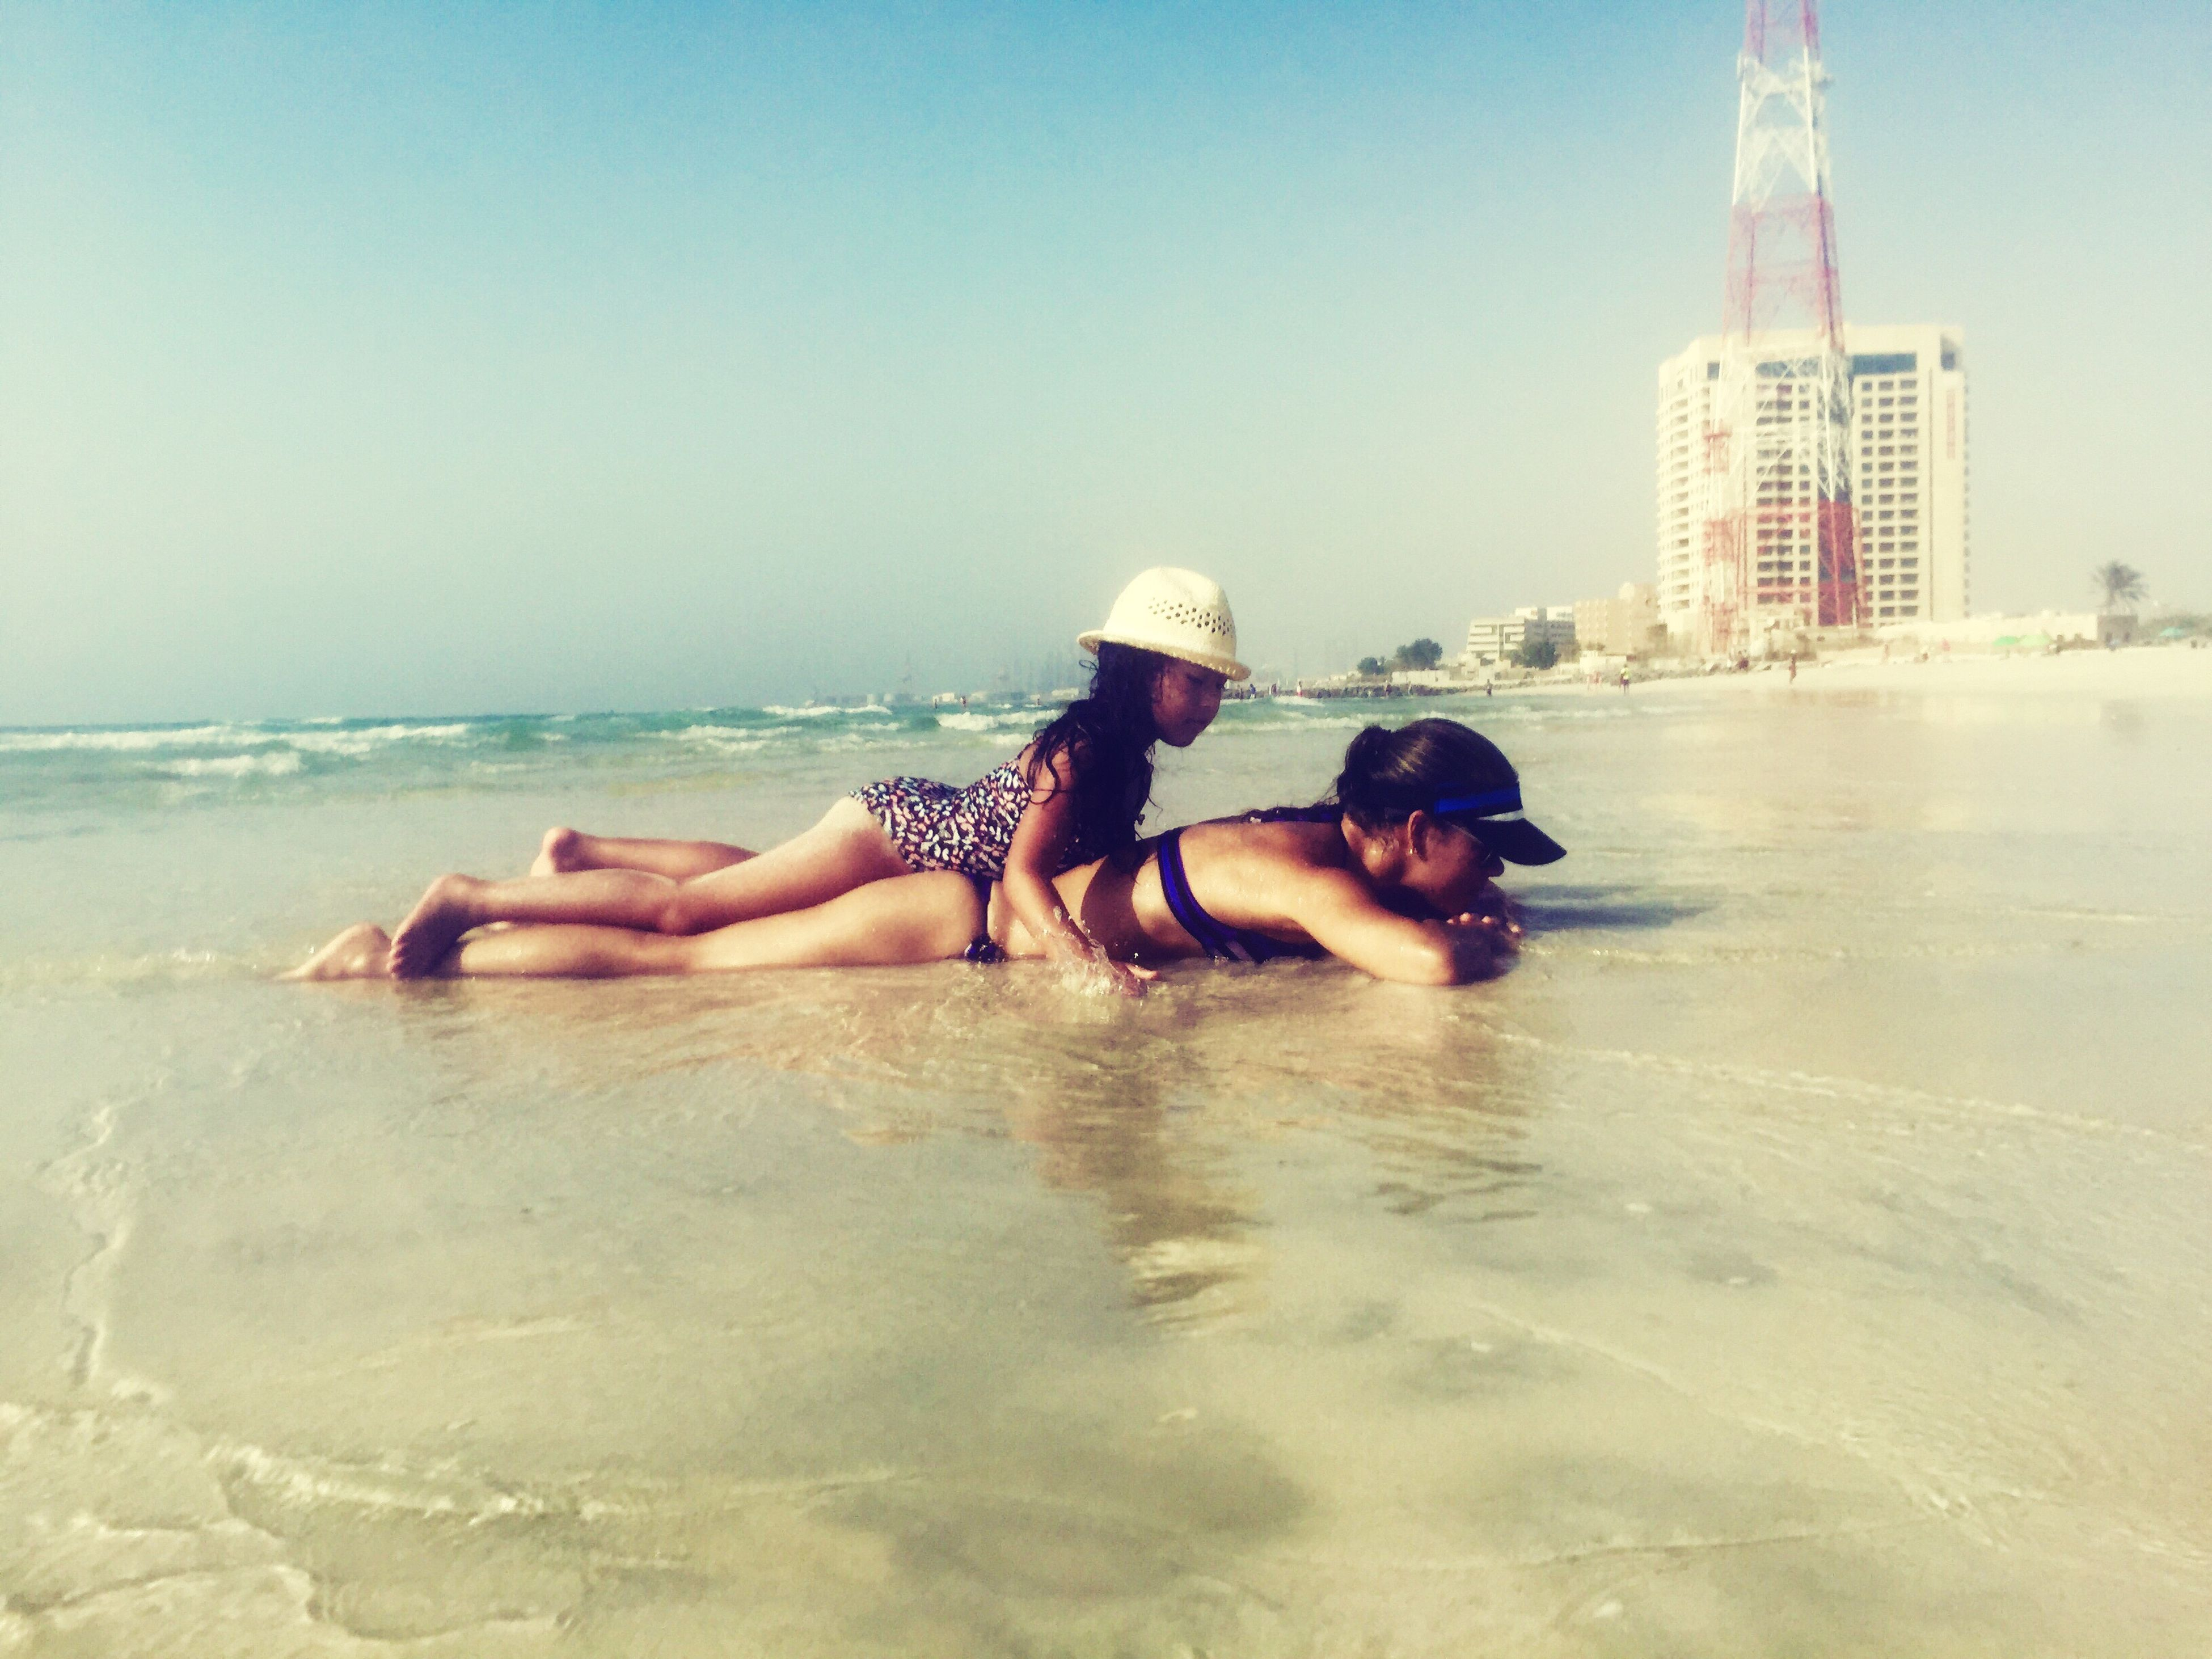 water, sea, real people, leisure activity, two people, young adult, young women, shirtless, vacations, waterfront, lifestyles, building exterior, outdoors, architecture, beach, built structure, day, togetherness, women, sky, men, clear sky, nature, adult, people